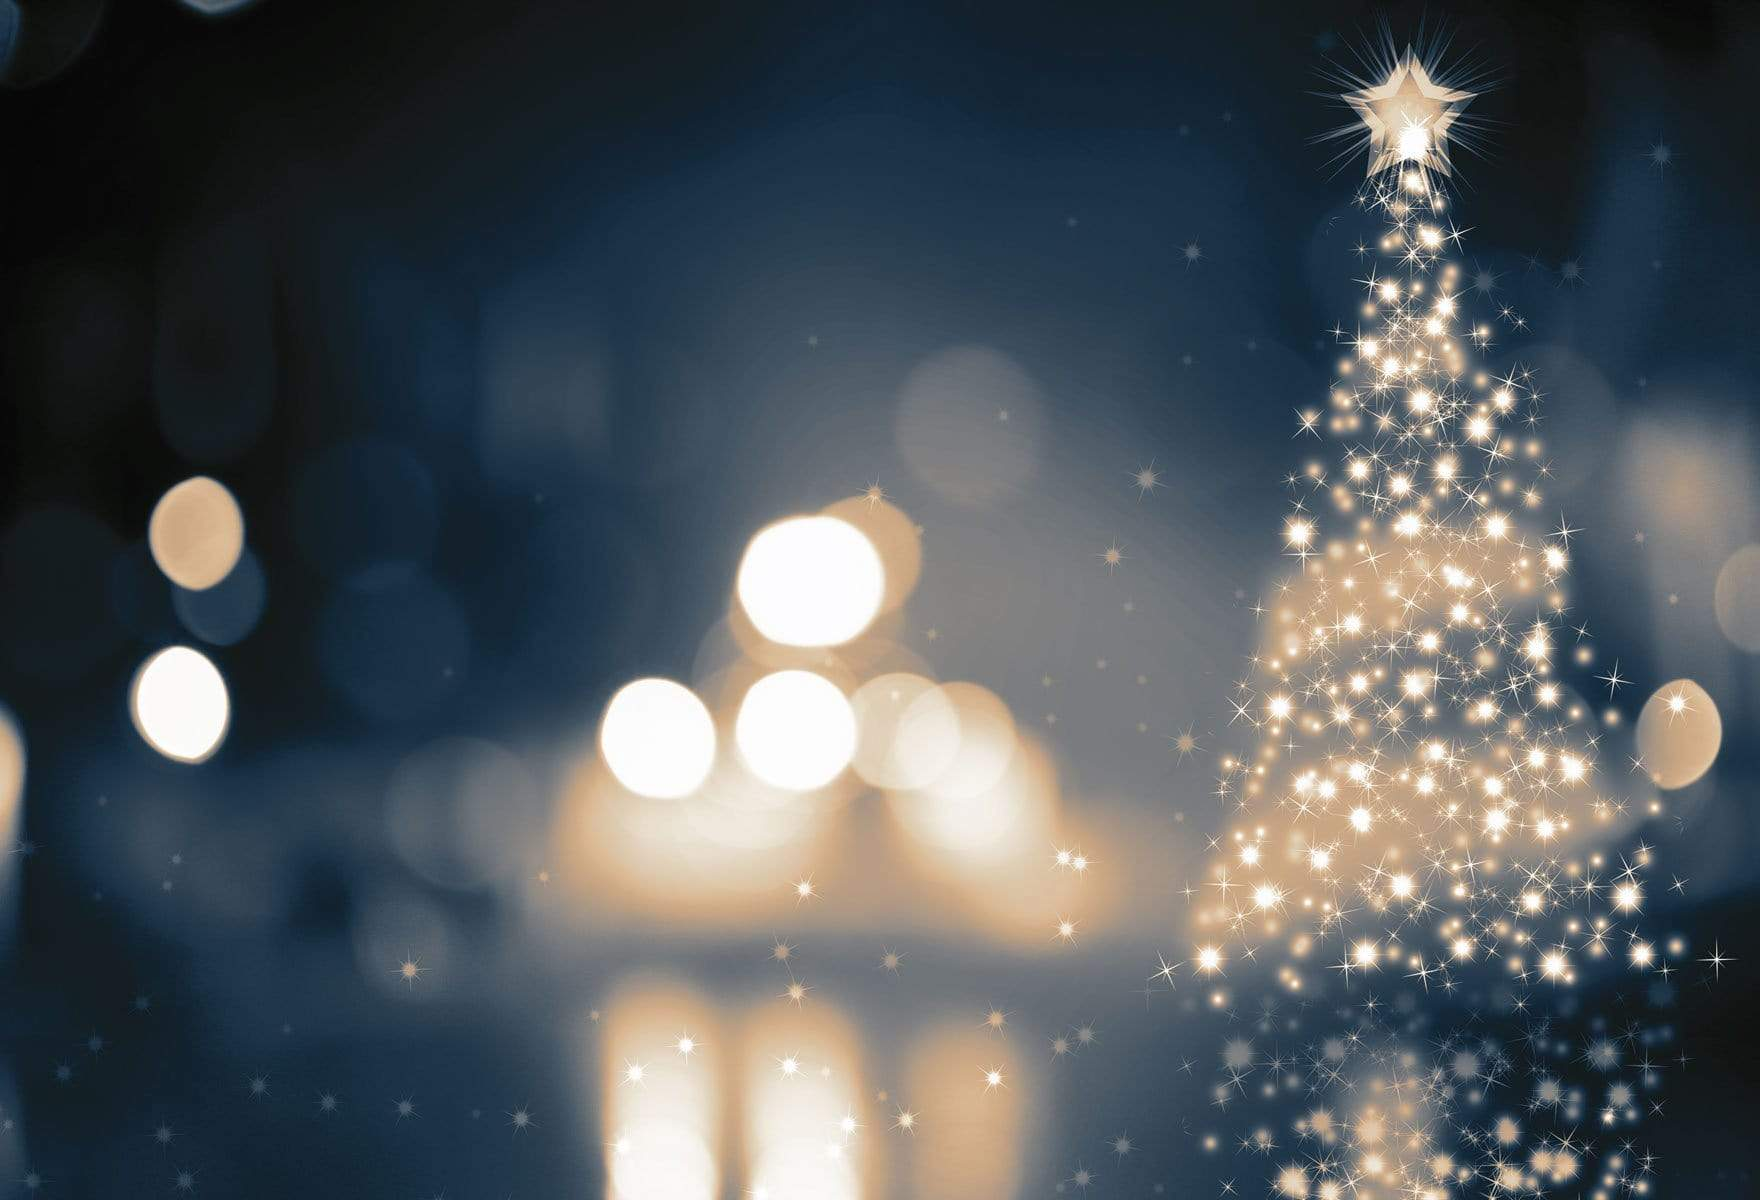 Load image into Gallery viewer, Katebackdrop:Kate Christmas Glitter Light Night Backdrop for Photography